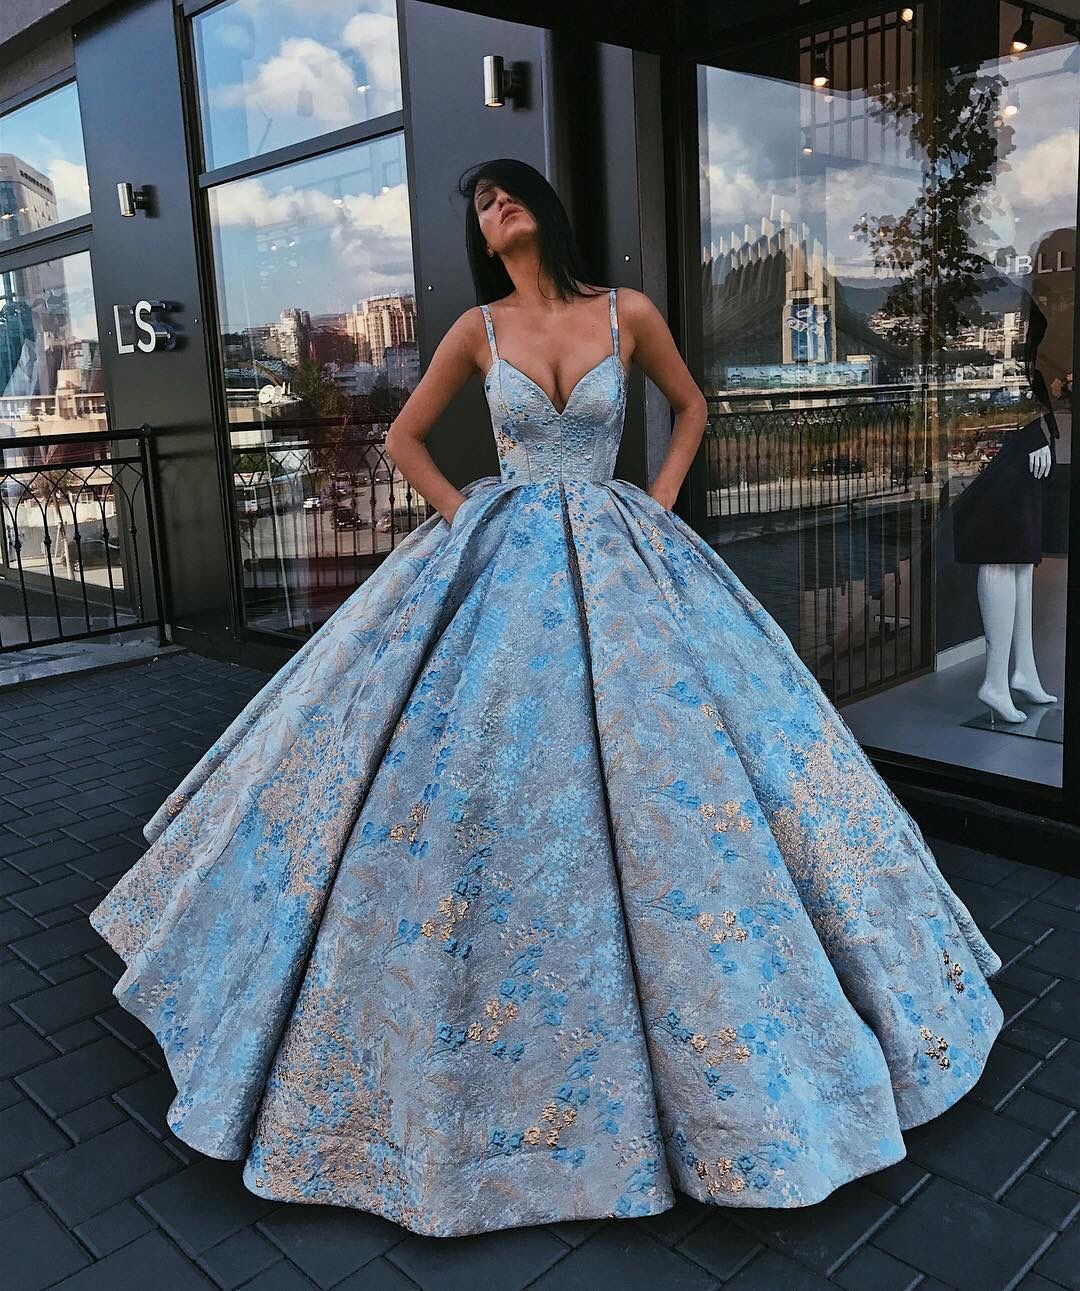 Pin by Claire Countryman on the works☽ | Pinterest | Prom, Gowns ...